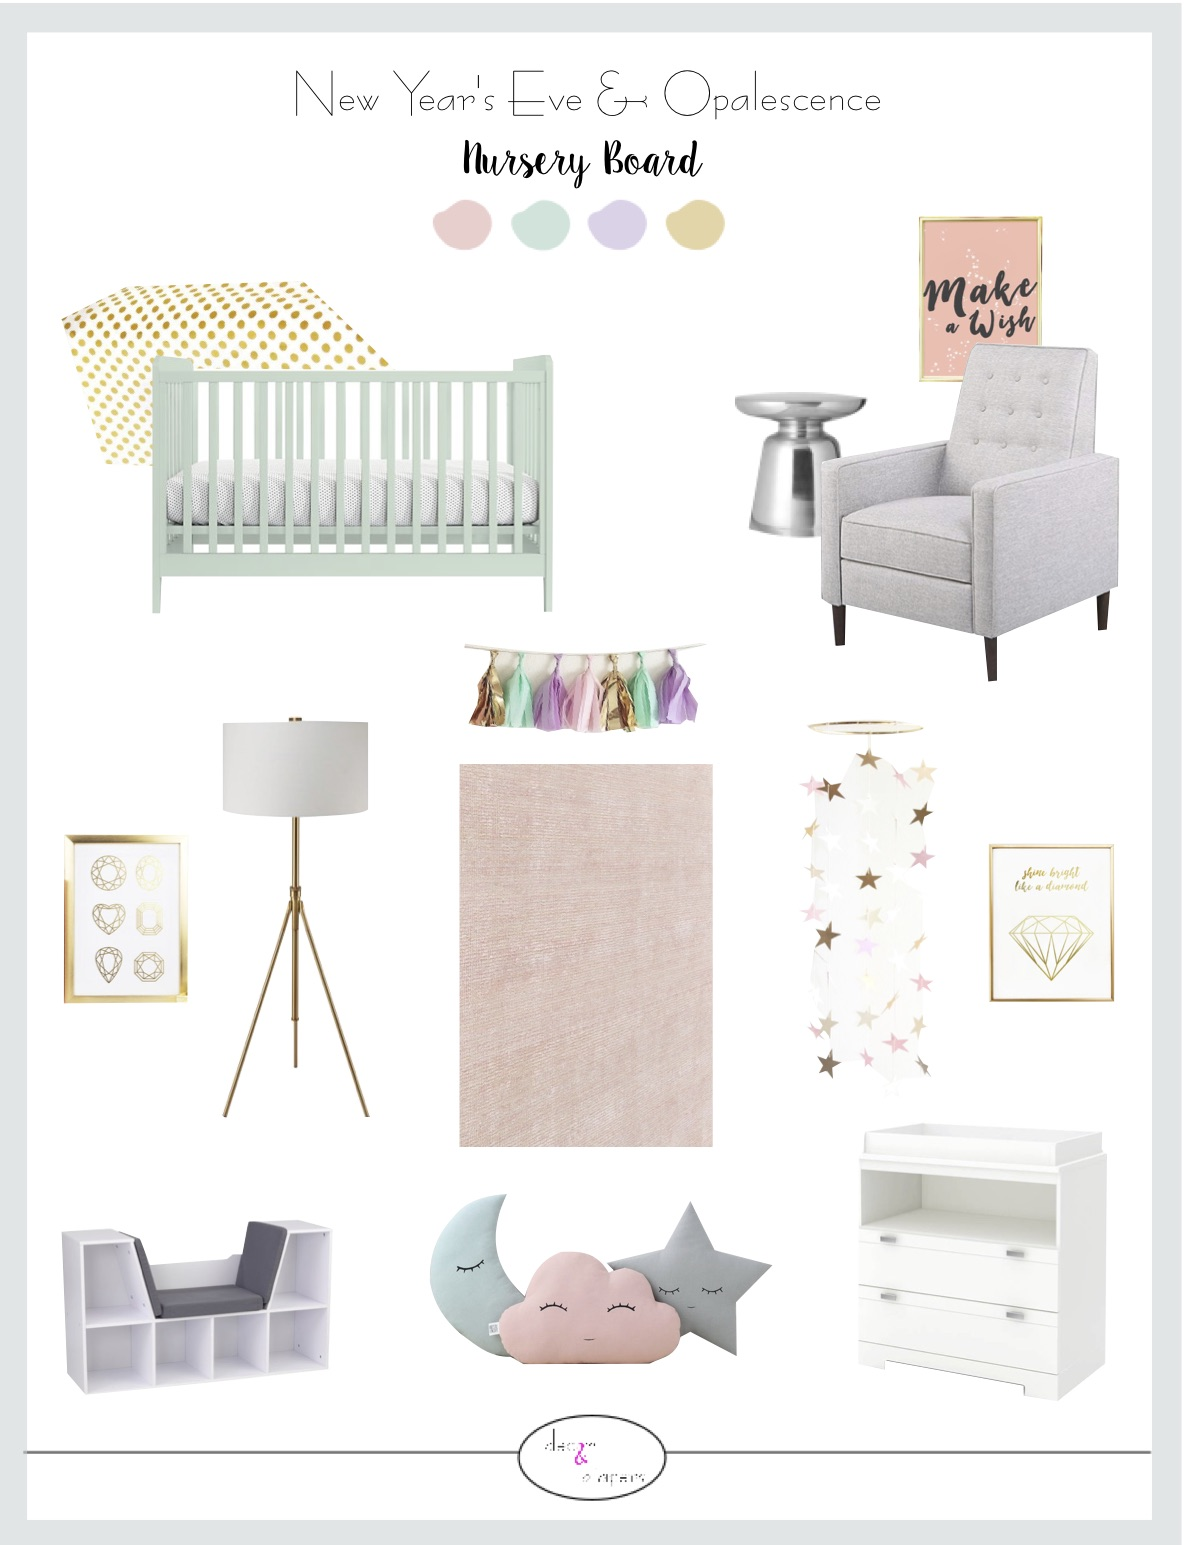 20181231 NYE Nursery- Product Board.jpg